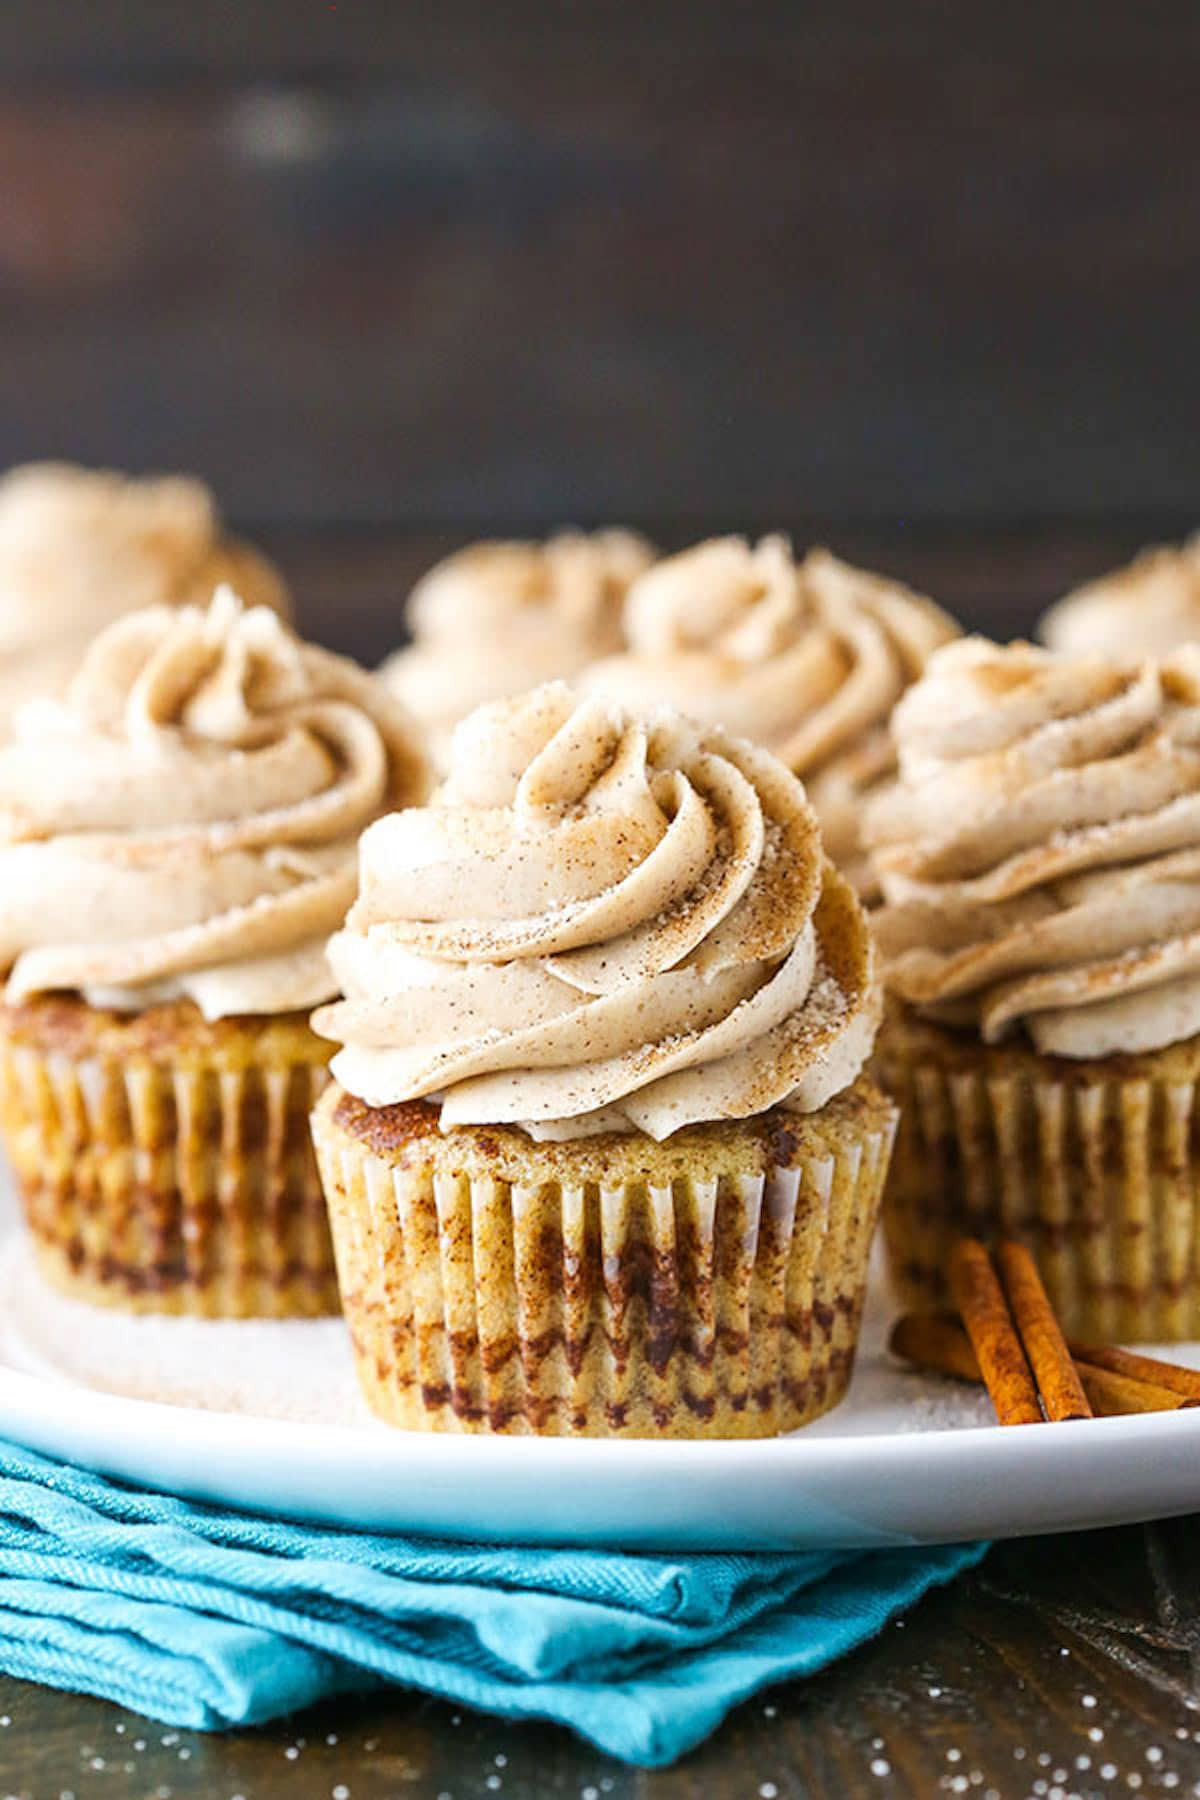 A White Plate Full of Cinnamon Sugar Swirl Cupcakes with Cinnamon Frosting